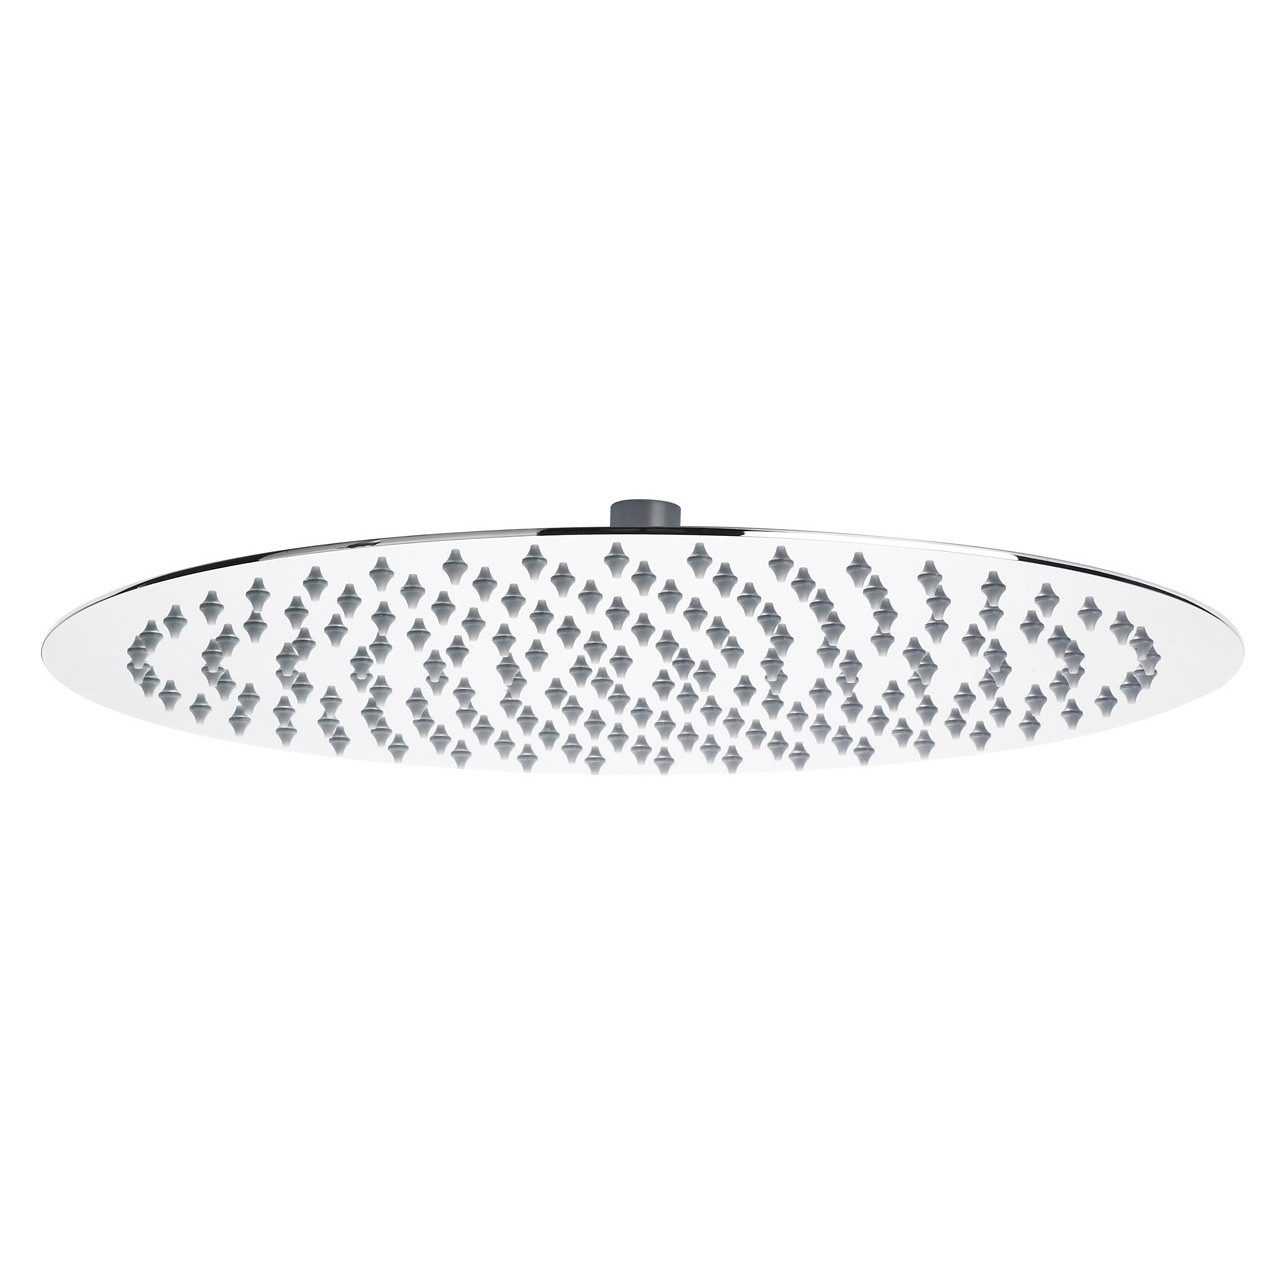 Hudson Reed Round Stainless Steel Shower Head 400mm - HEAD46